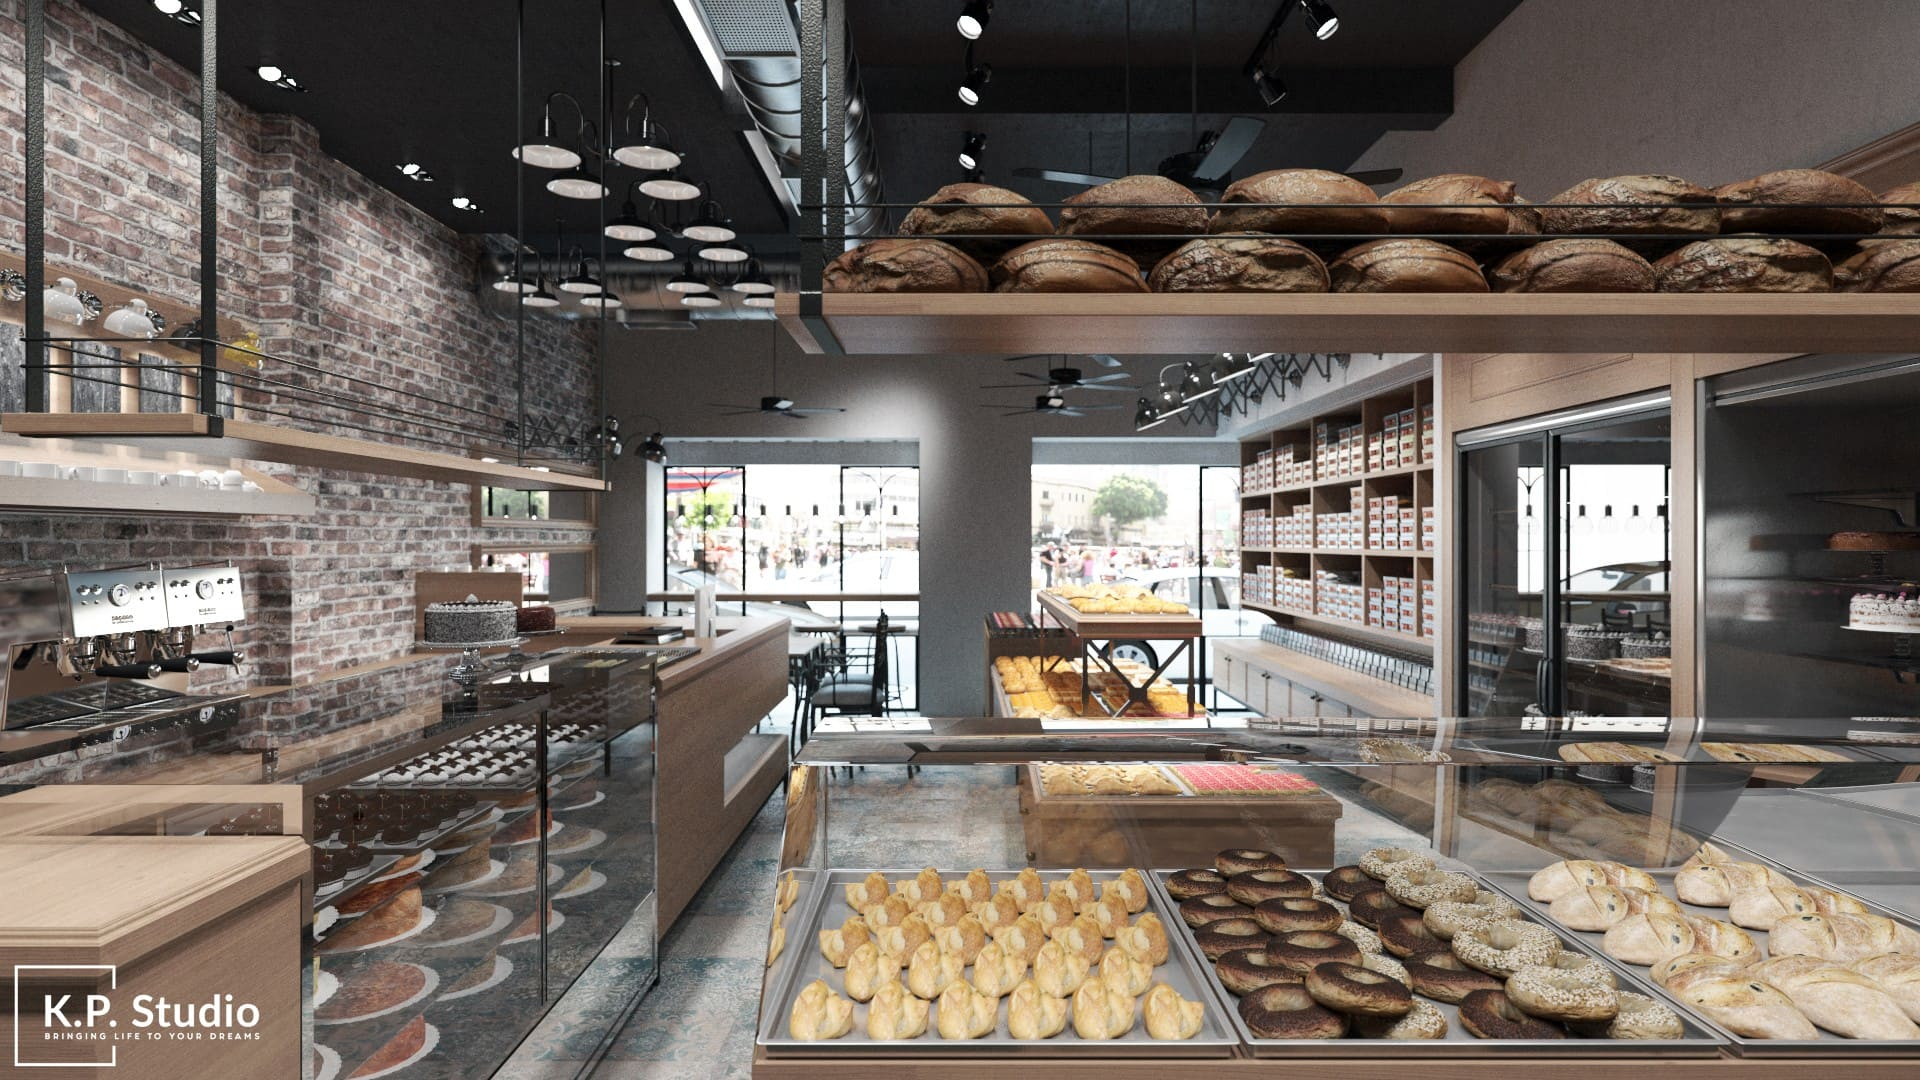 English Cake – Cakes and pastries shop